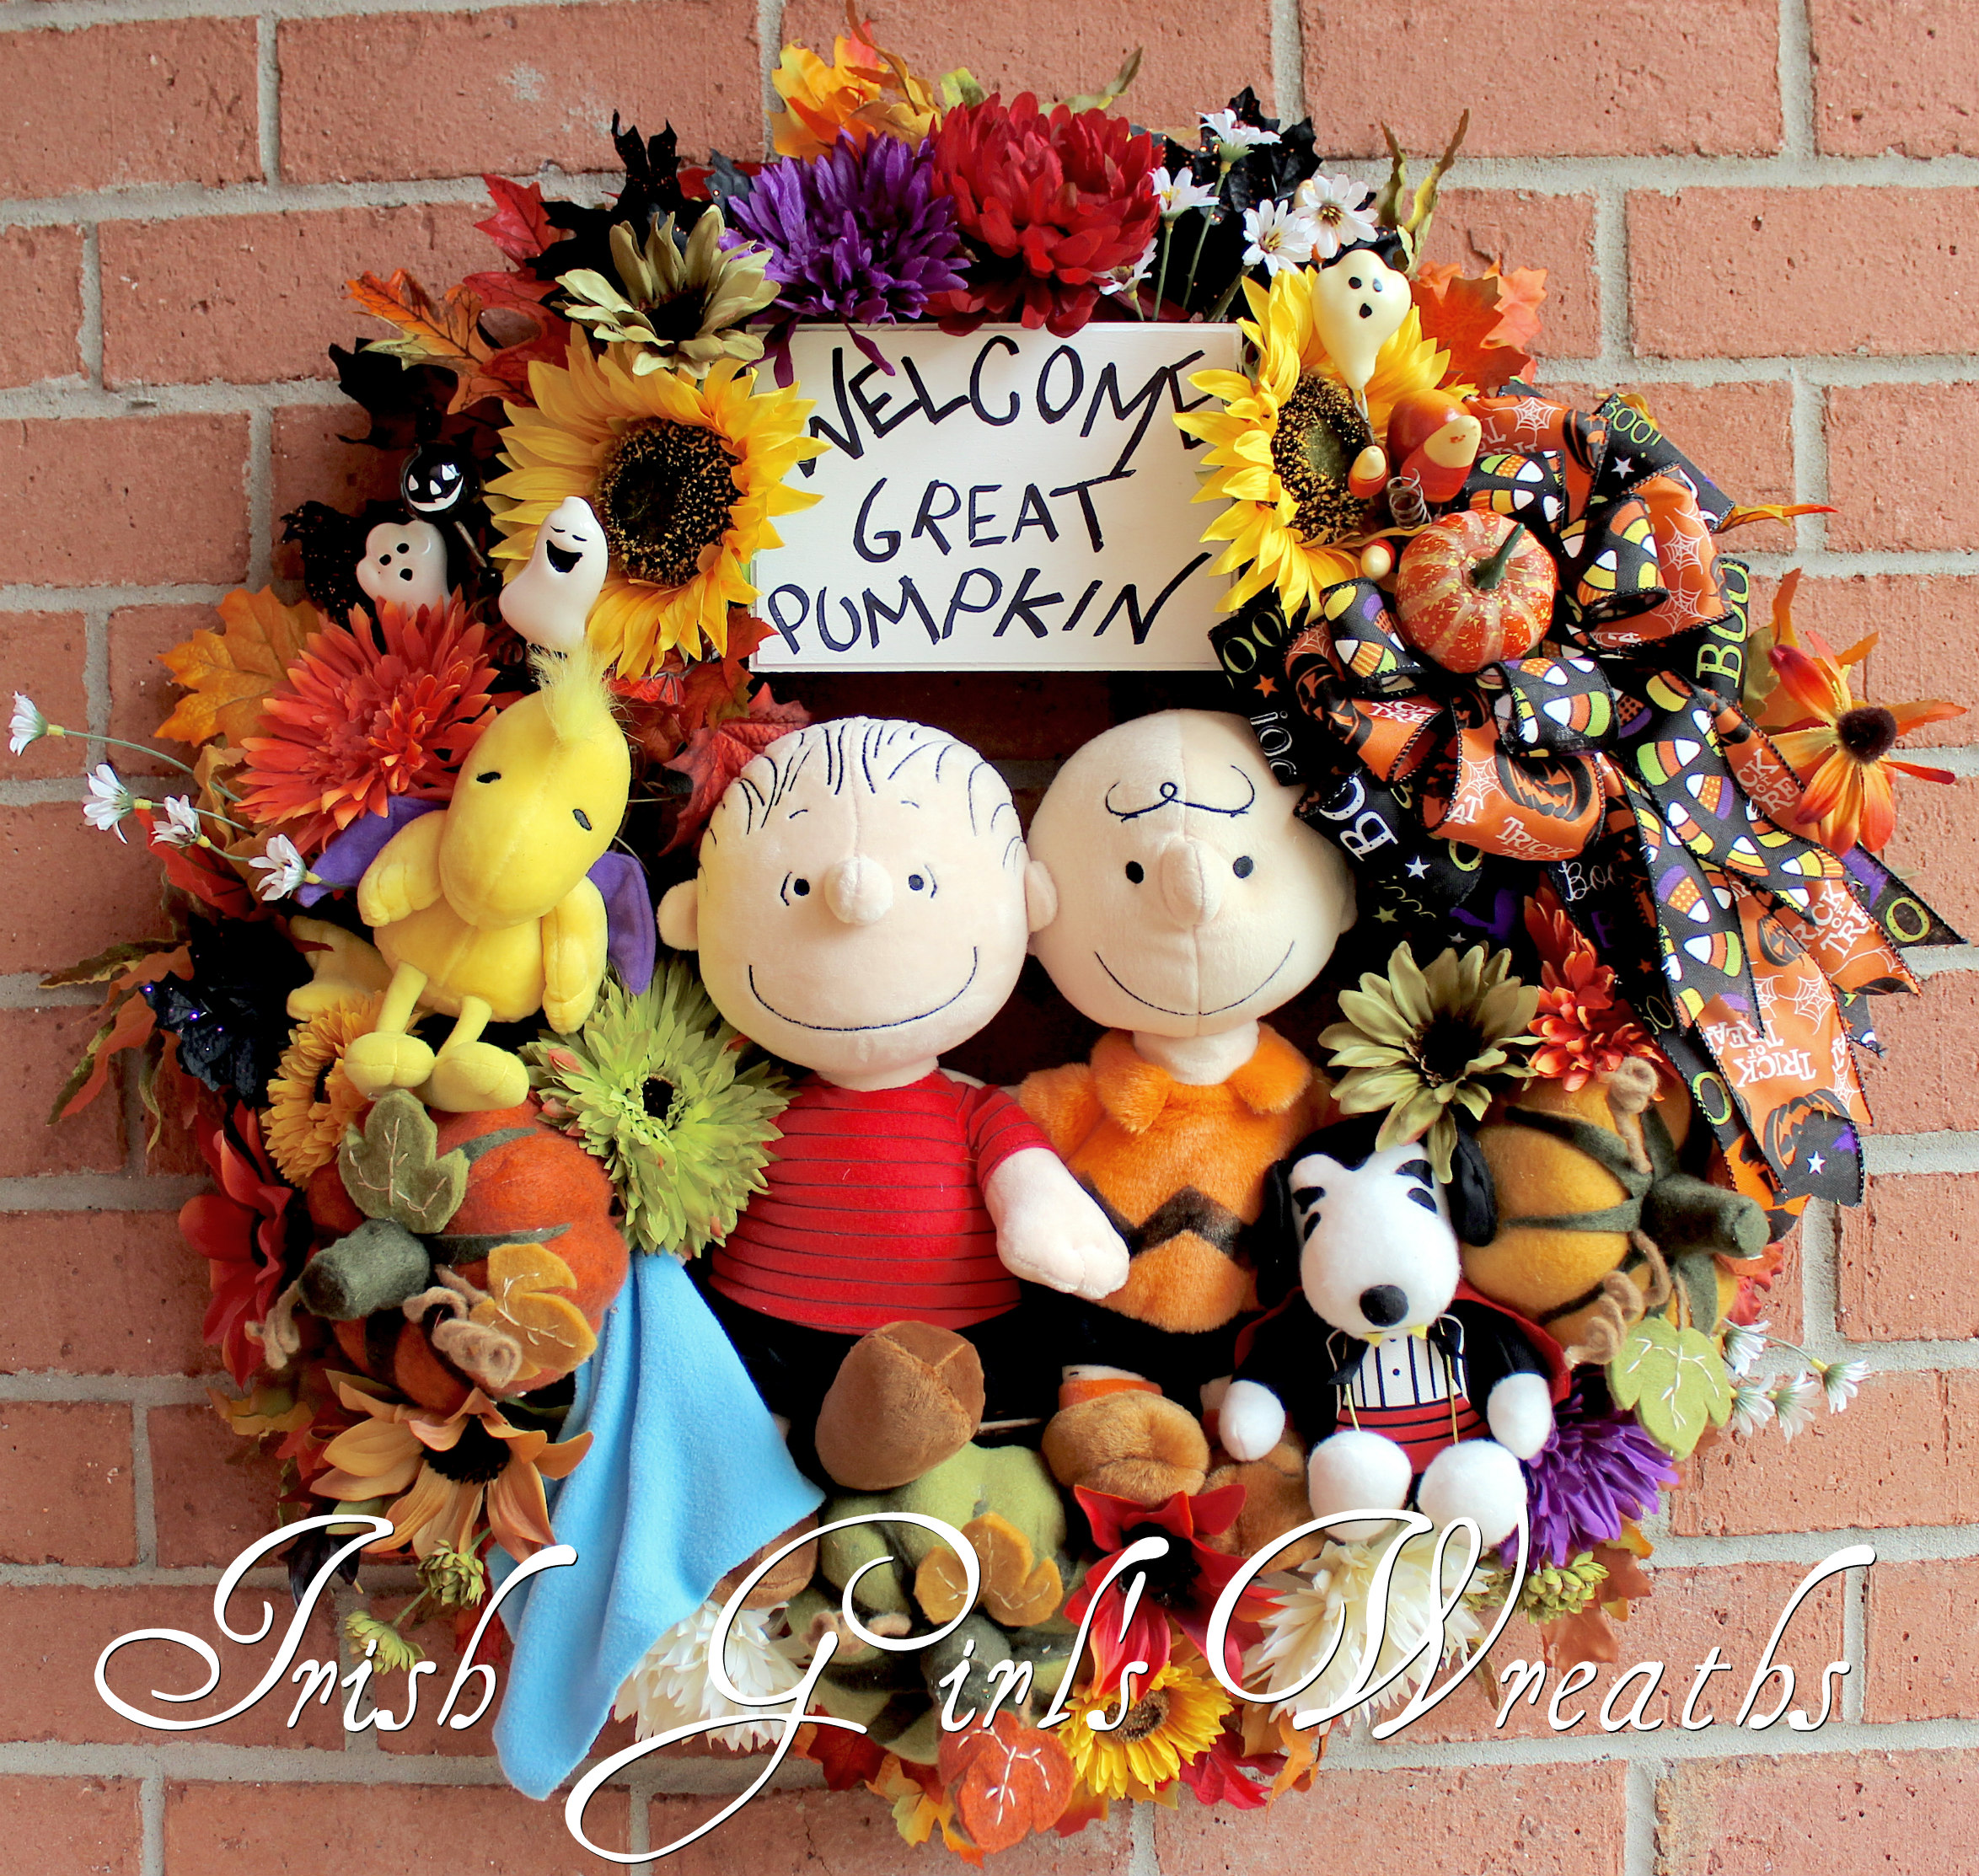 MADE TO ORDER – Welcome Great Pumpkin Large Halloween Wreath, Charlie Brown, Linus, Snoopy, Woodstock, Peanuts, Felt Pumpkins